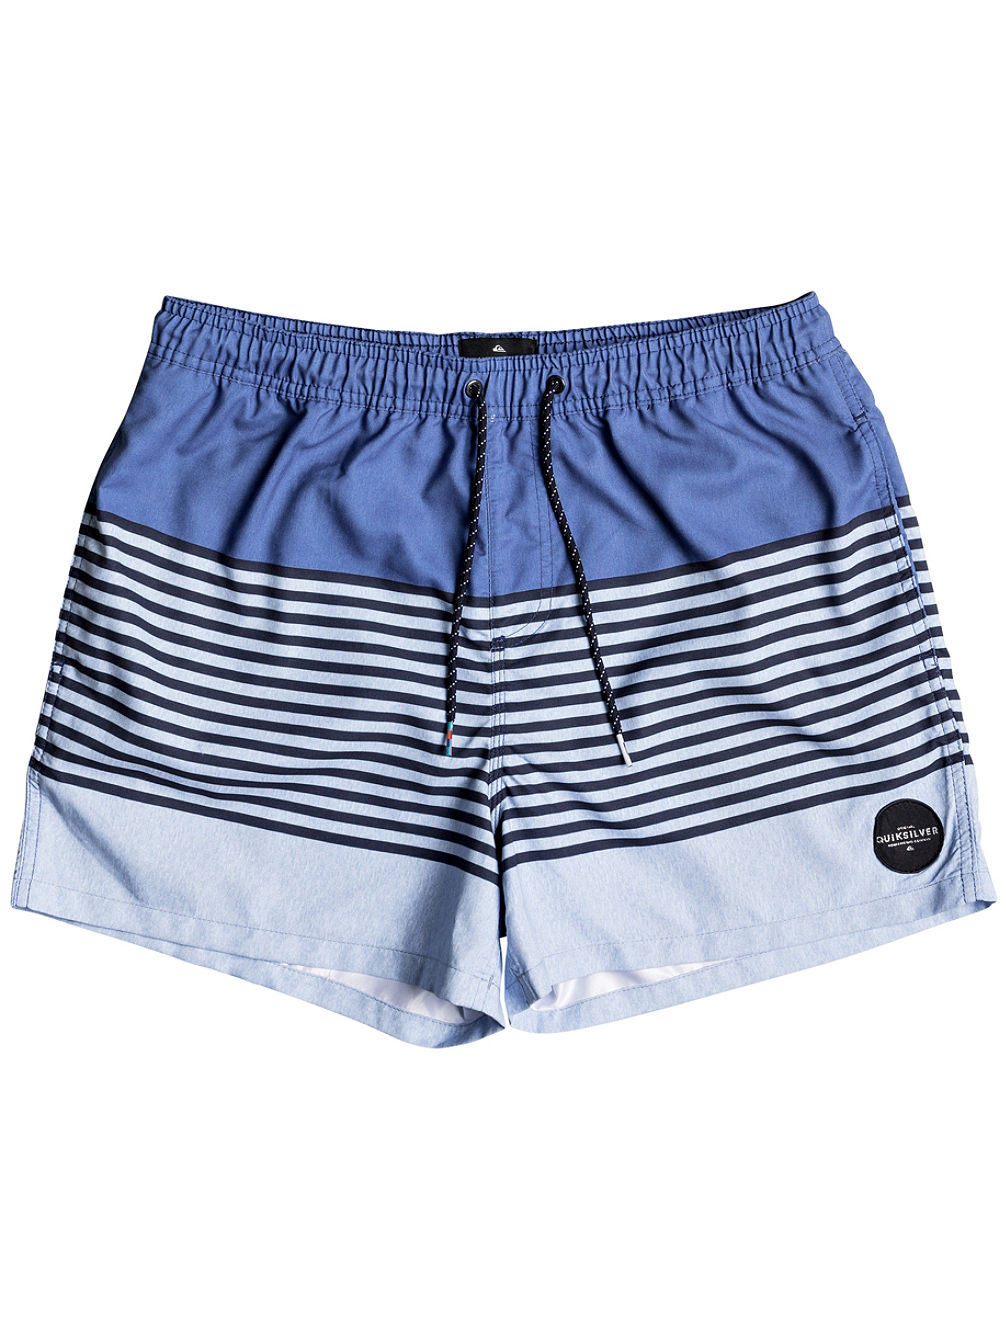 "Revolution Volley 15"" Boardshorts"